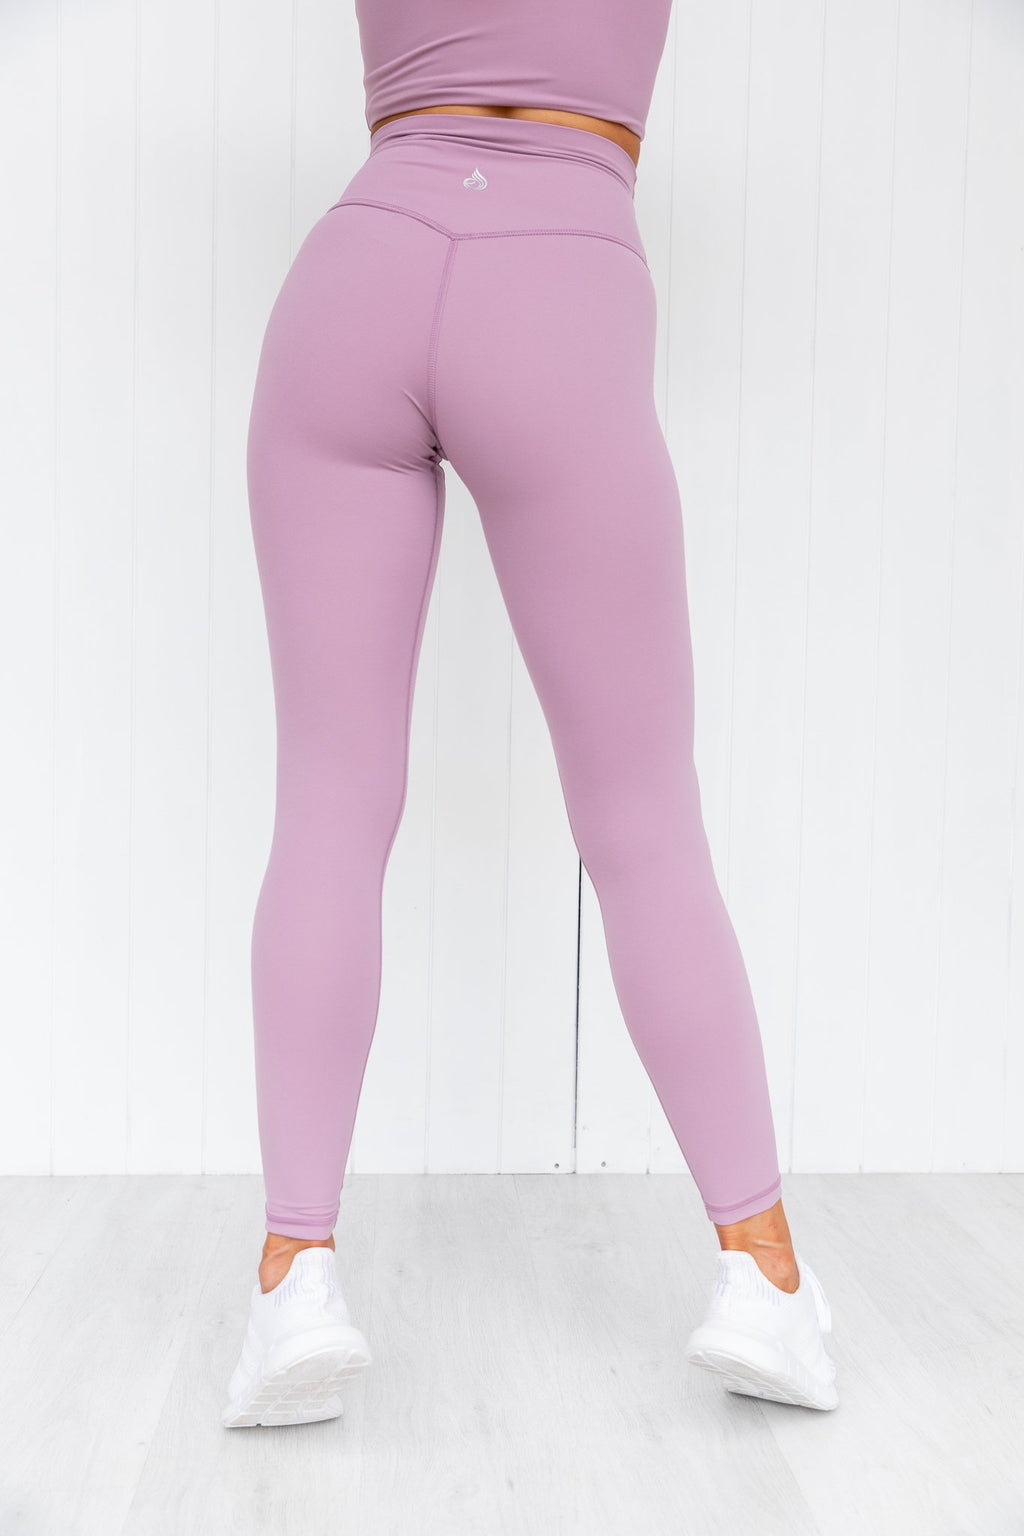 NKD High Waist Leggings - Grape - PURE DASH